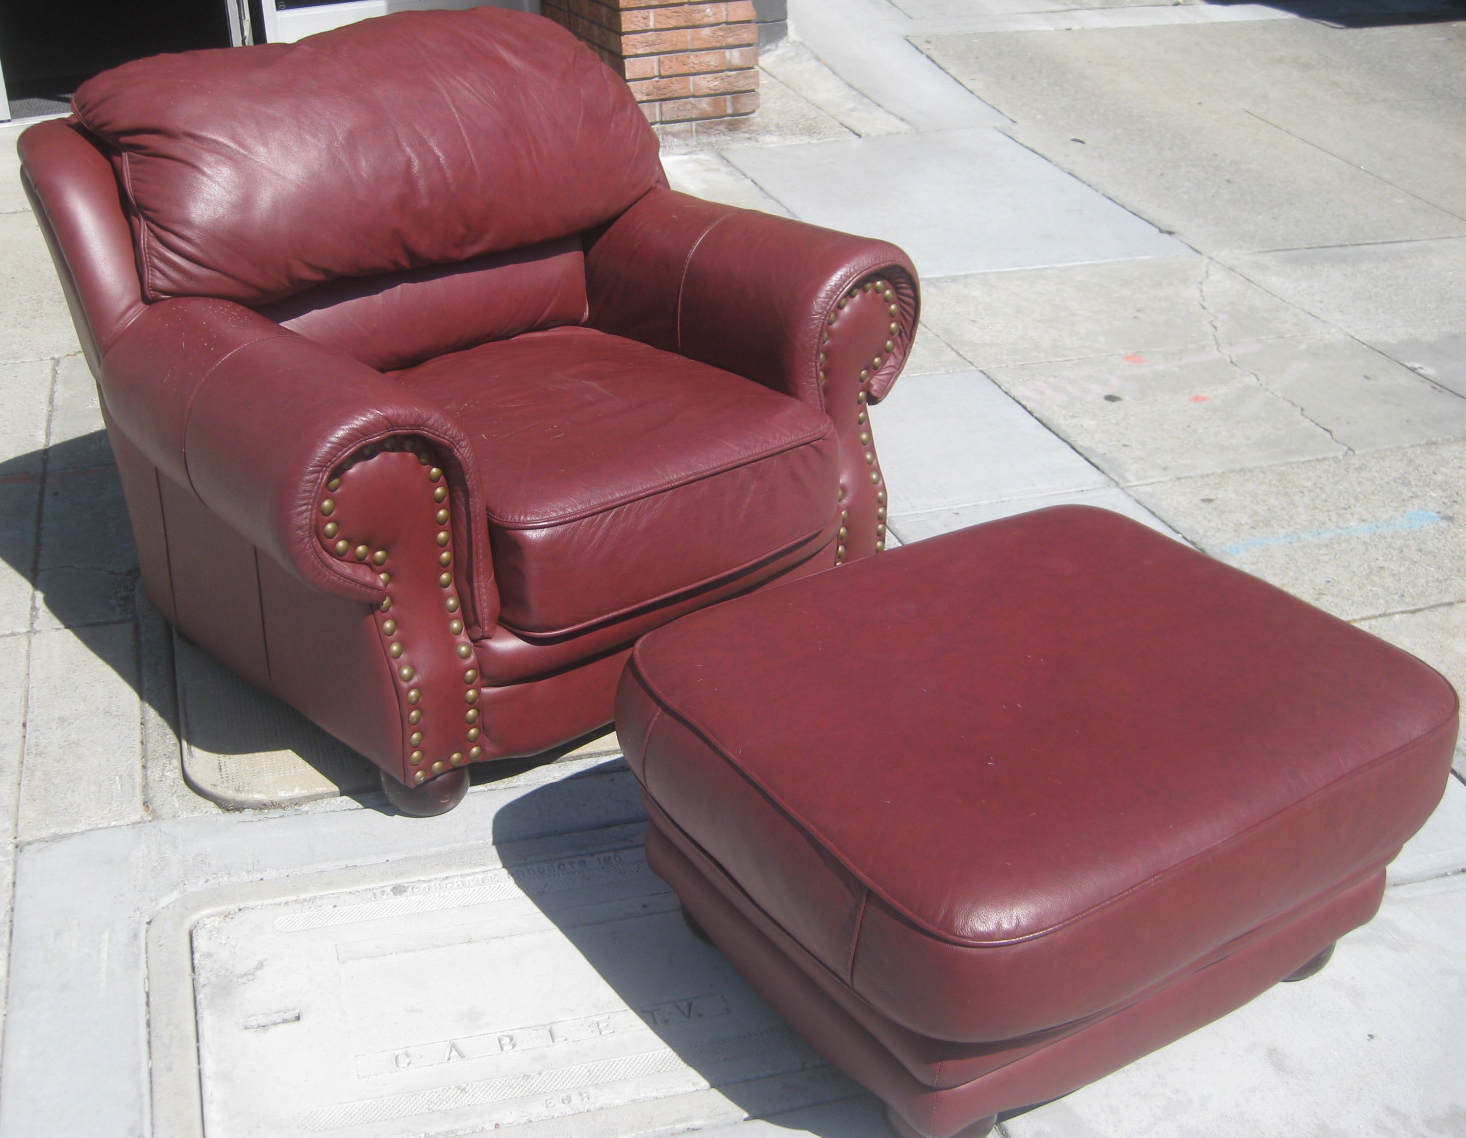 Uhuru Furniture Amp Collectibles Sold Burgundy Chair And